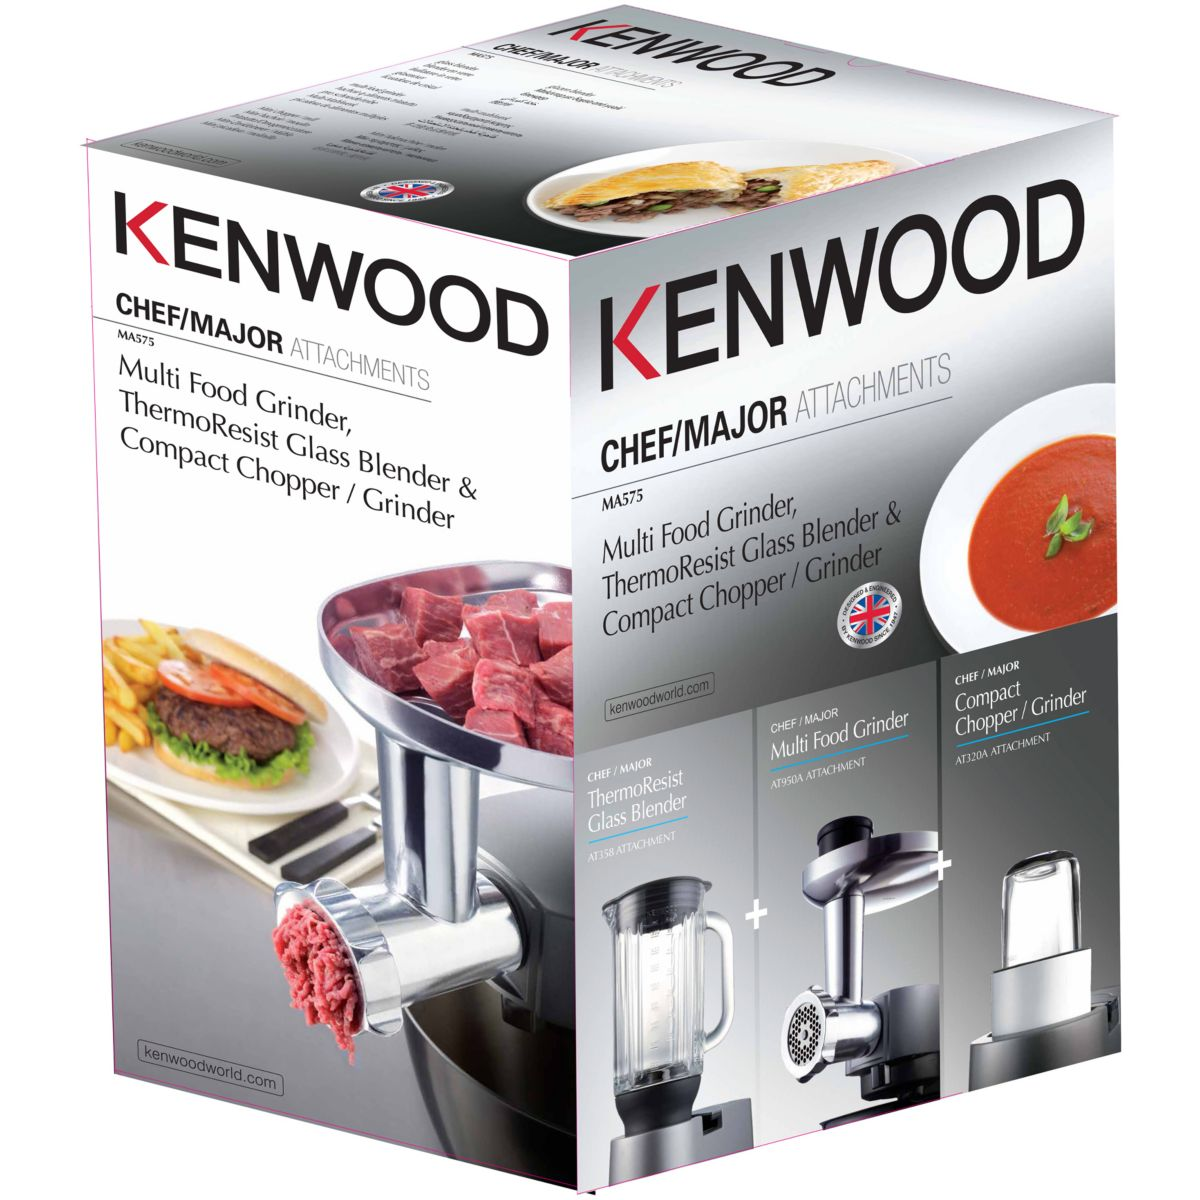 Acc. kenwood ma575 kit at950 + at320 + a - 20% de remise imm�diate avec le code : wd20 (photo)